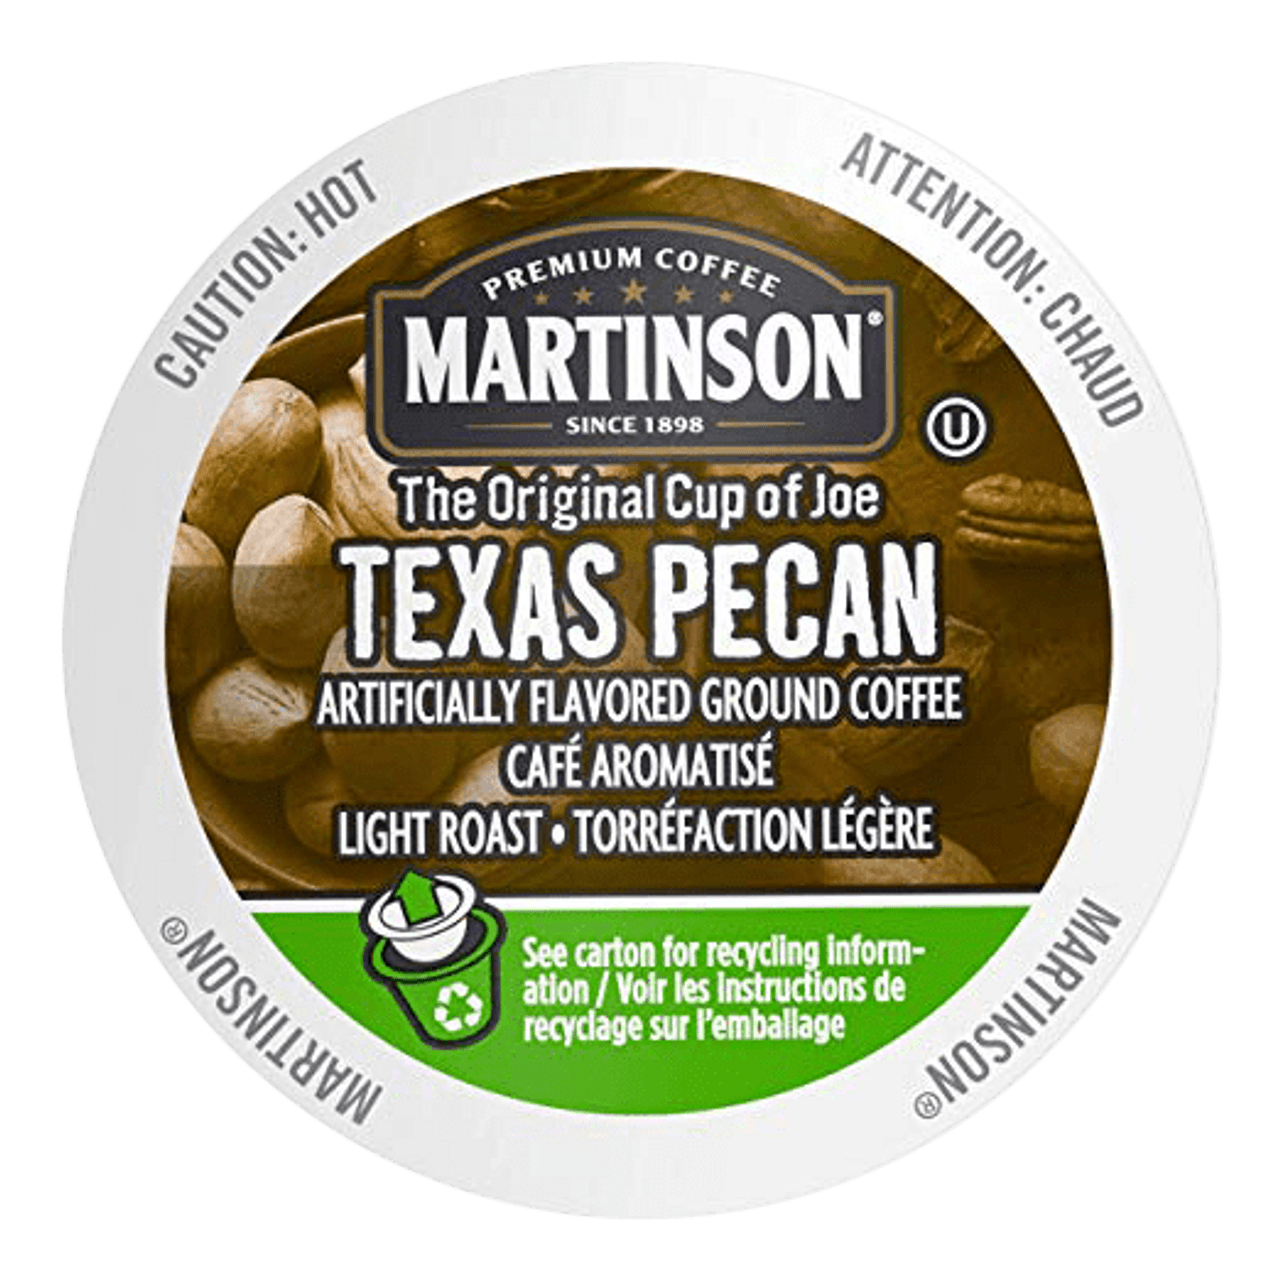 Texas Pecan Flavored Coffee by Martinson